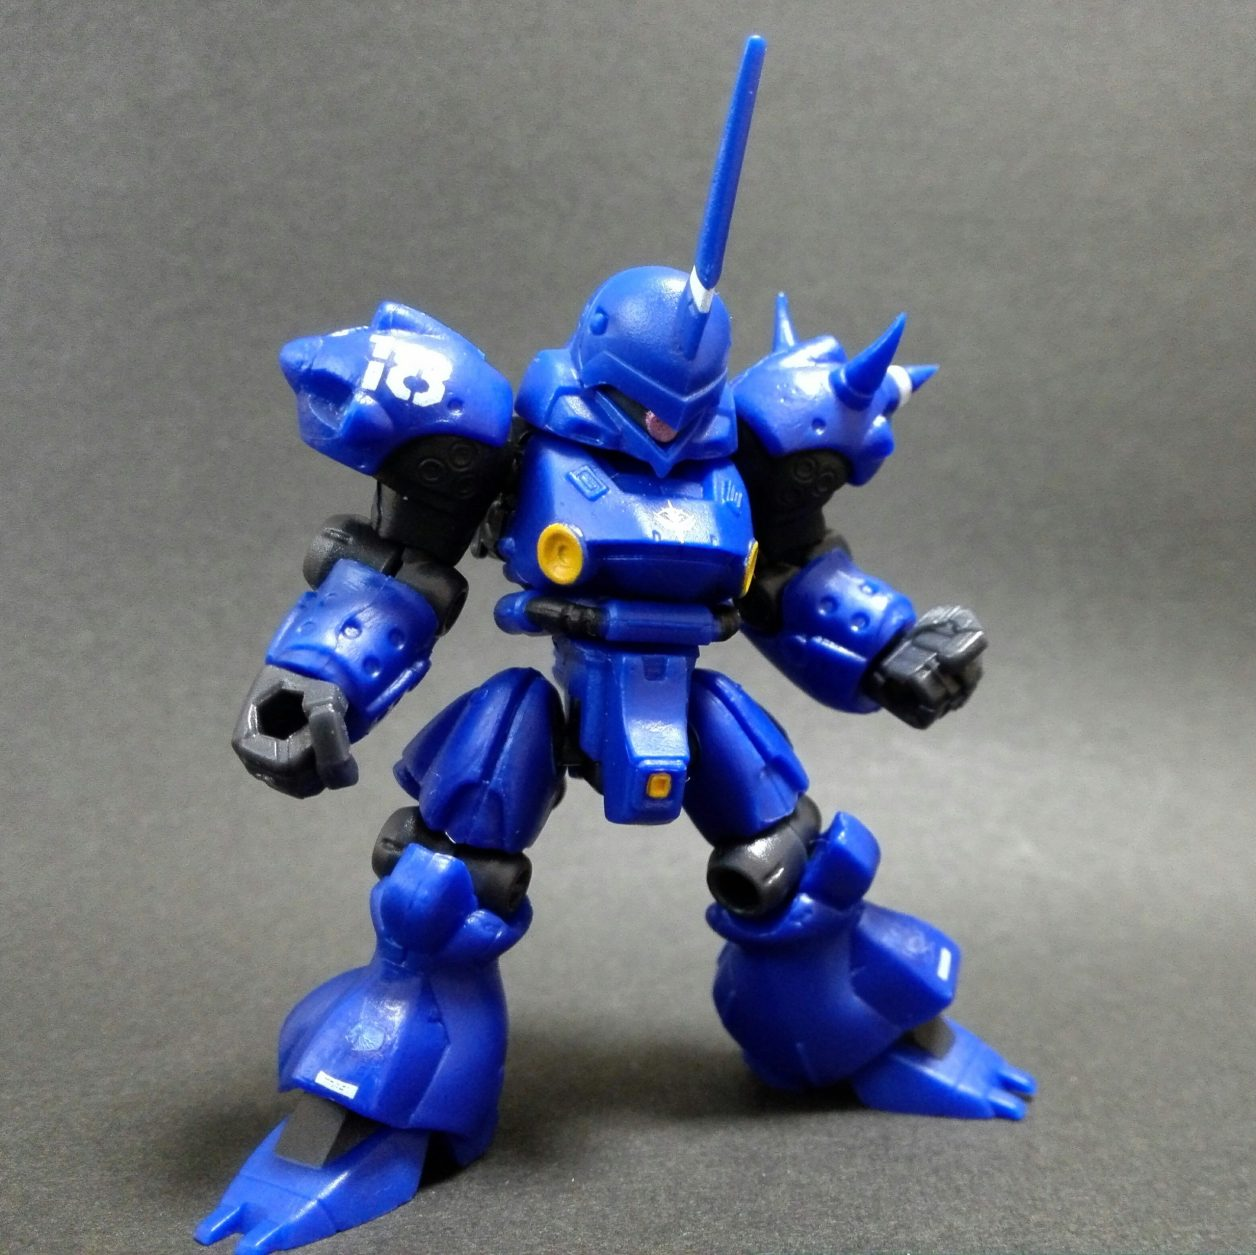 mobile suit ensemble 4.5弾のケンプファー(マーキングプラス)本体の組立後の完成画像